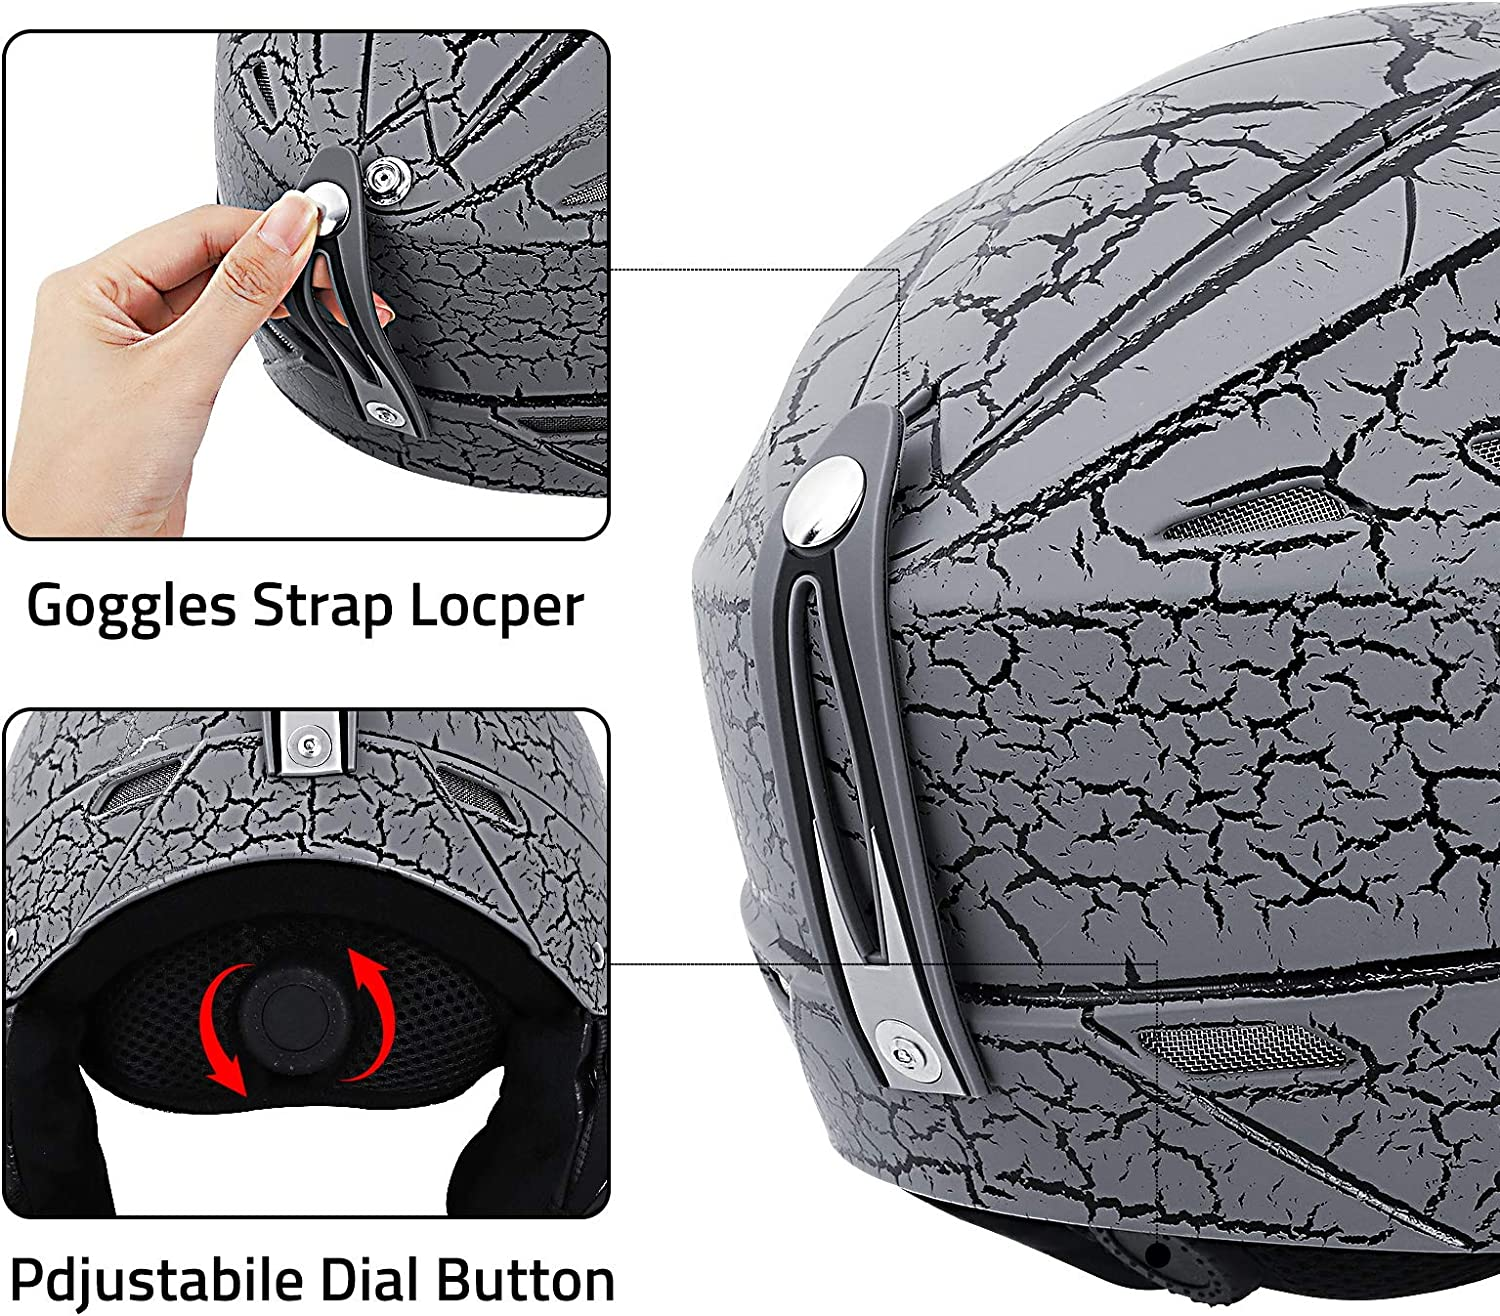 Dial Fit Goggles Compatible Ski Helmet Snowboard Helmet for Men Women Youth Performance Safety w//Active Ventilation PHZ Removable Fleece Liner and Ear Pads Snow Sport Helmets